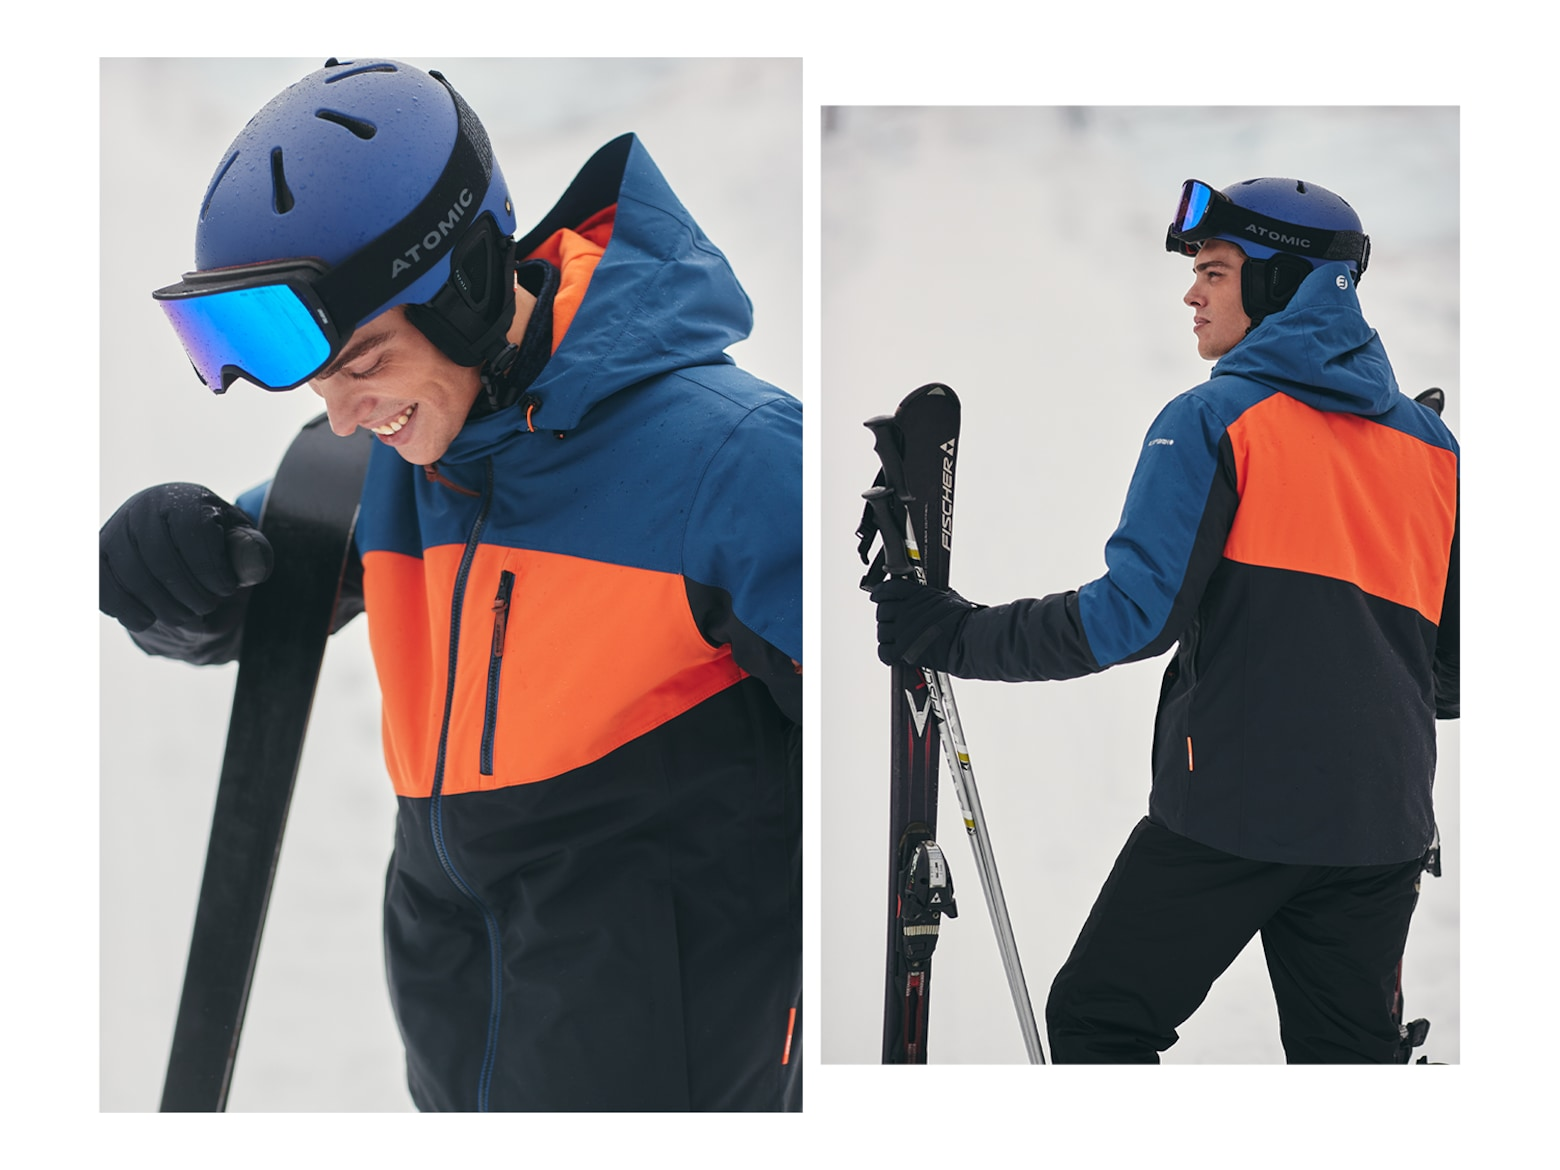 Daniel A.  - Across Colors Ski Look